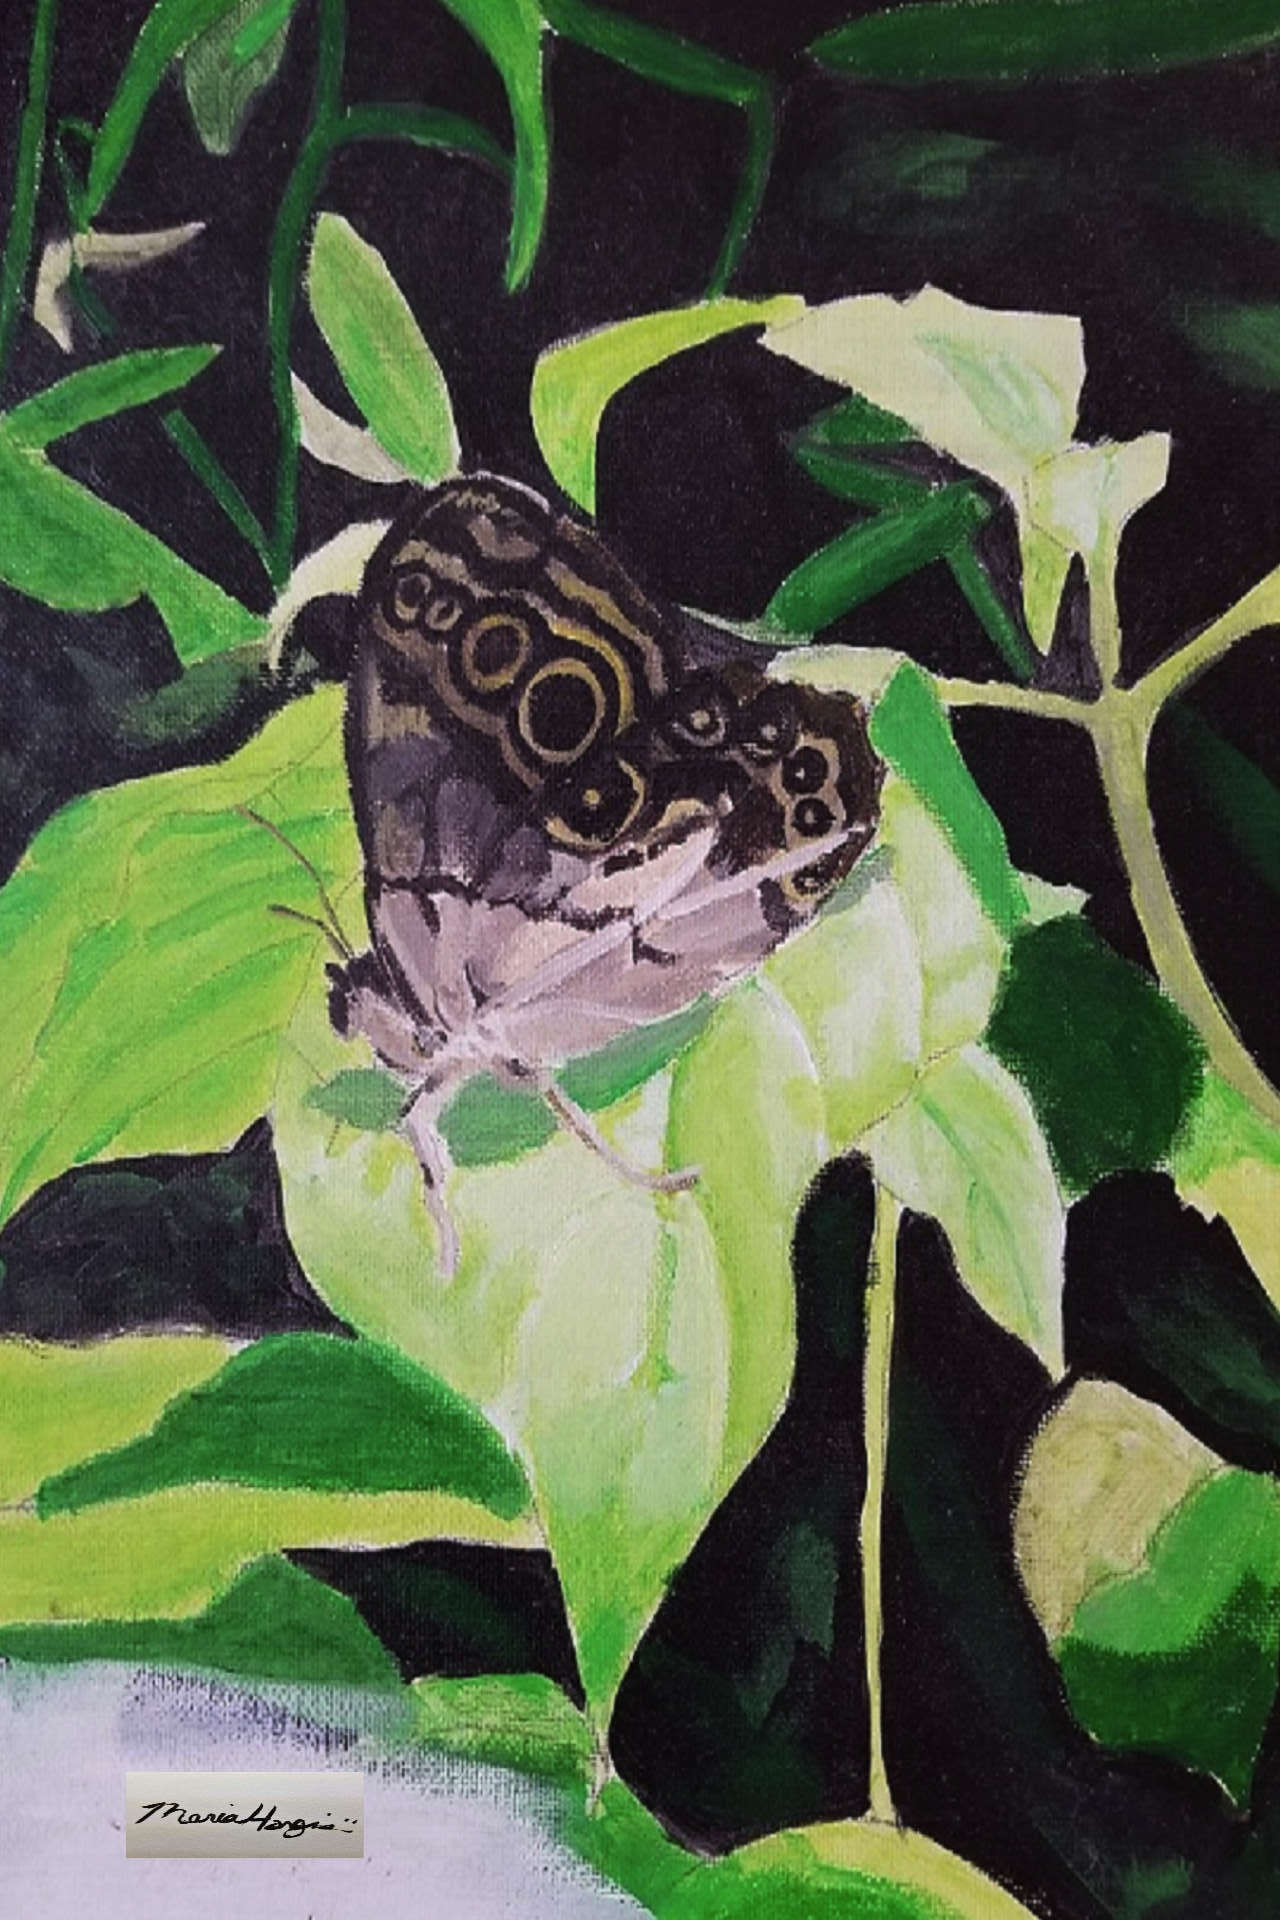 Destiny Butterfly - Check out product page for more nature print such as Destiny Butterfly.